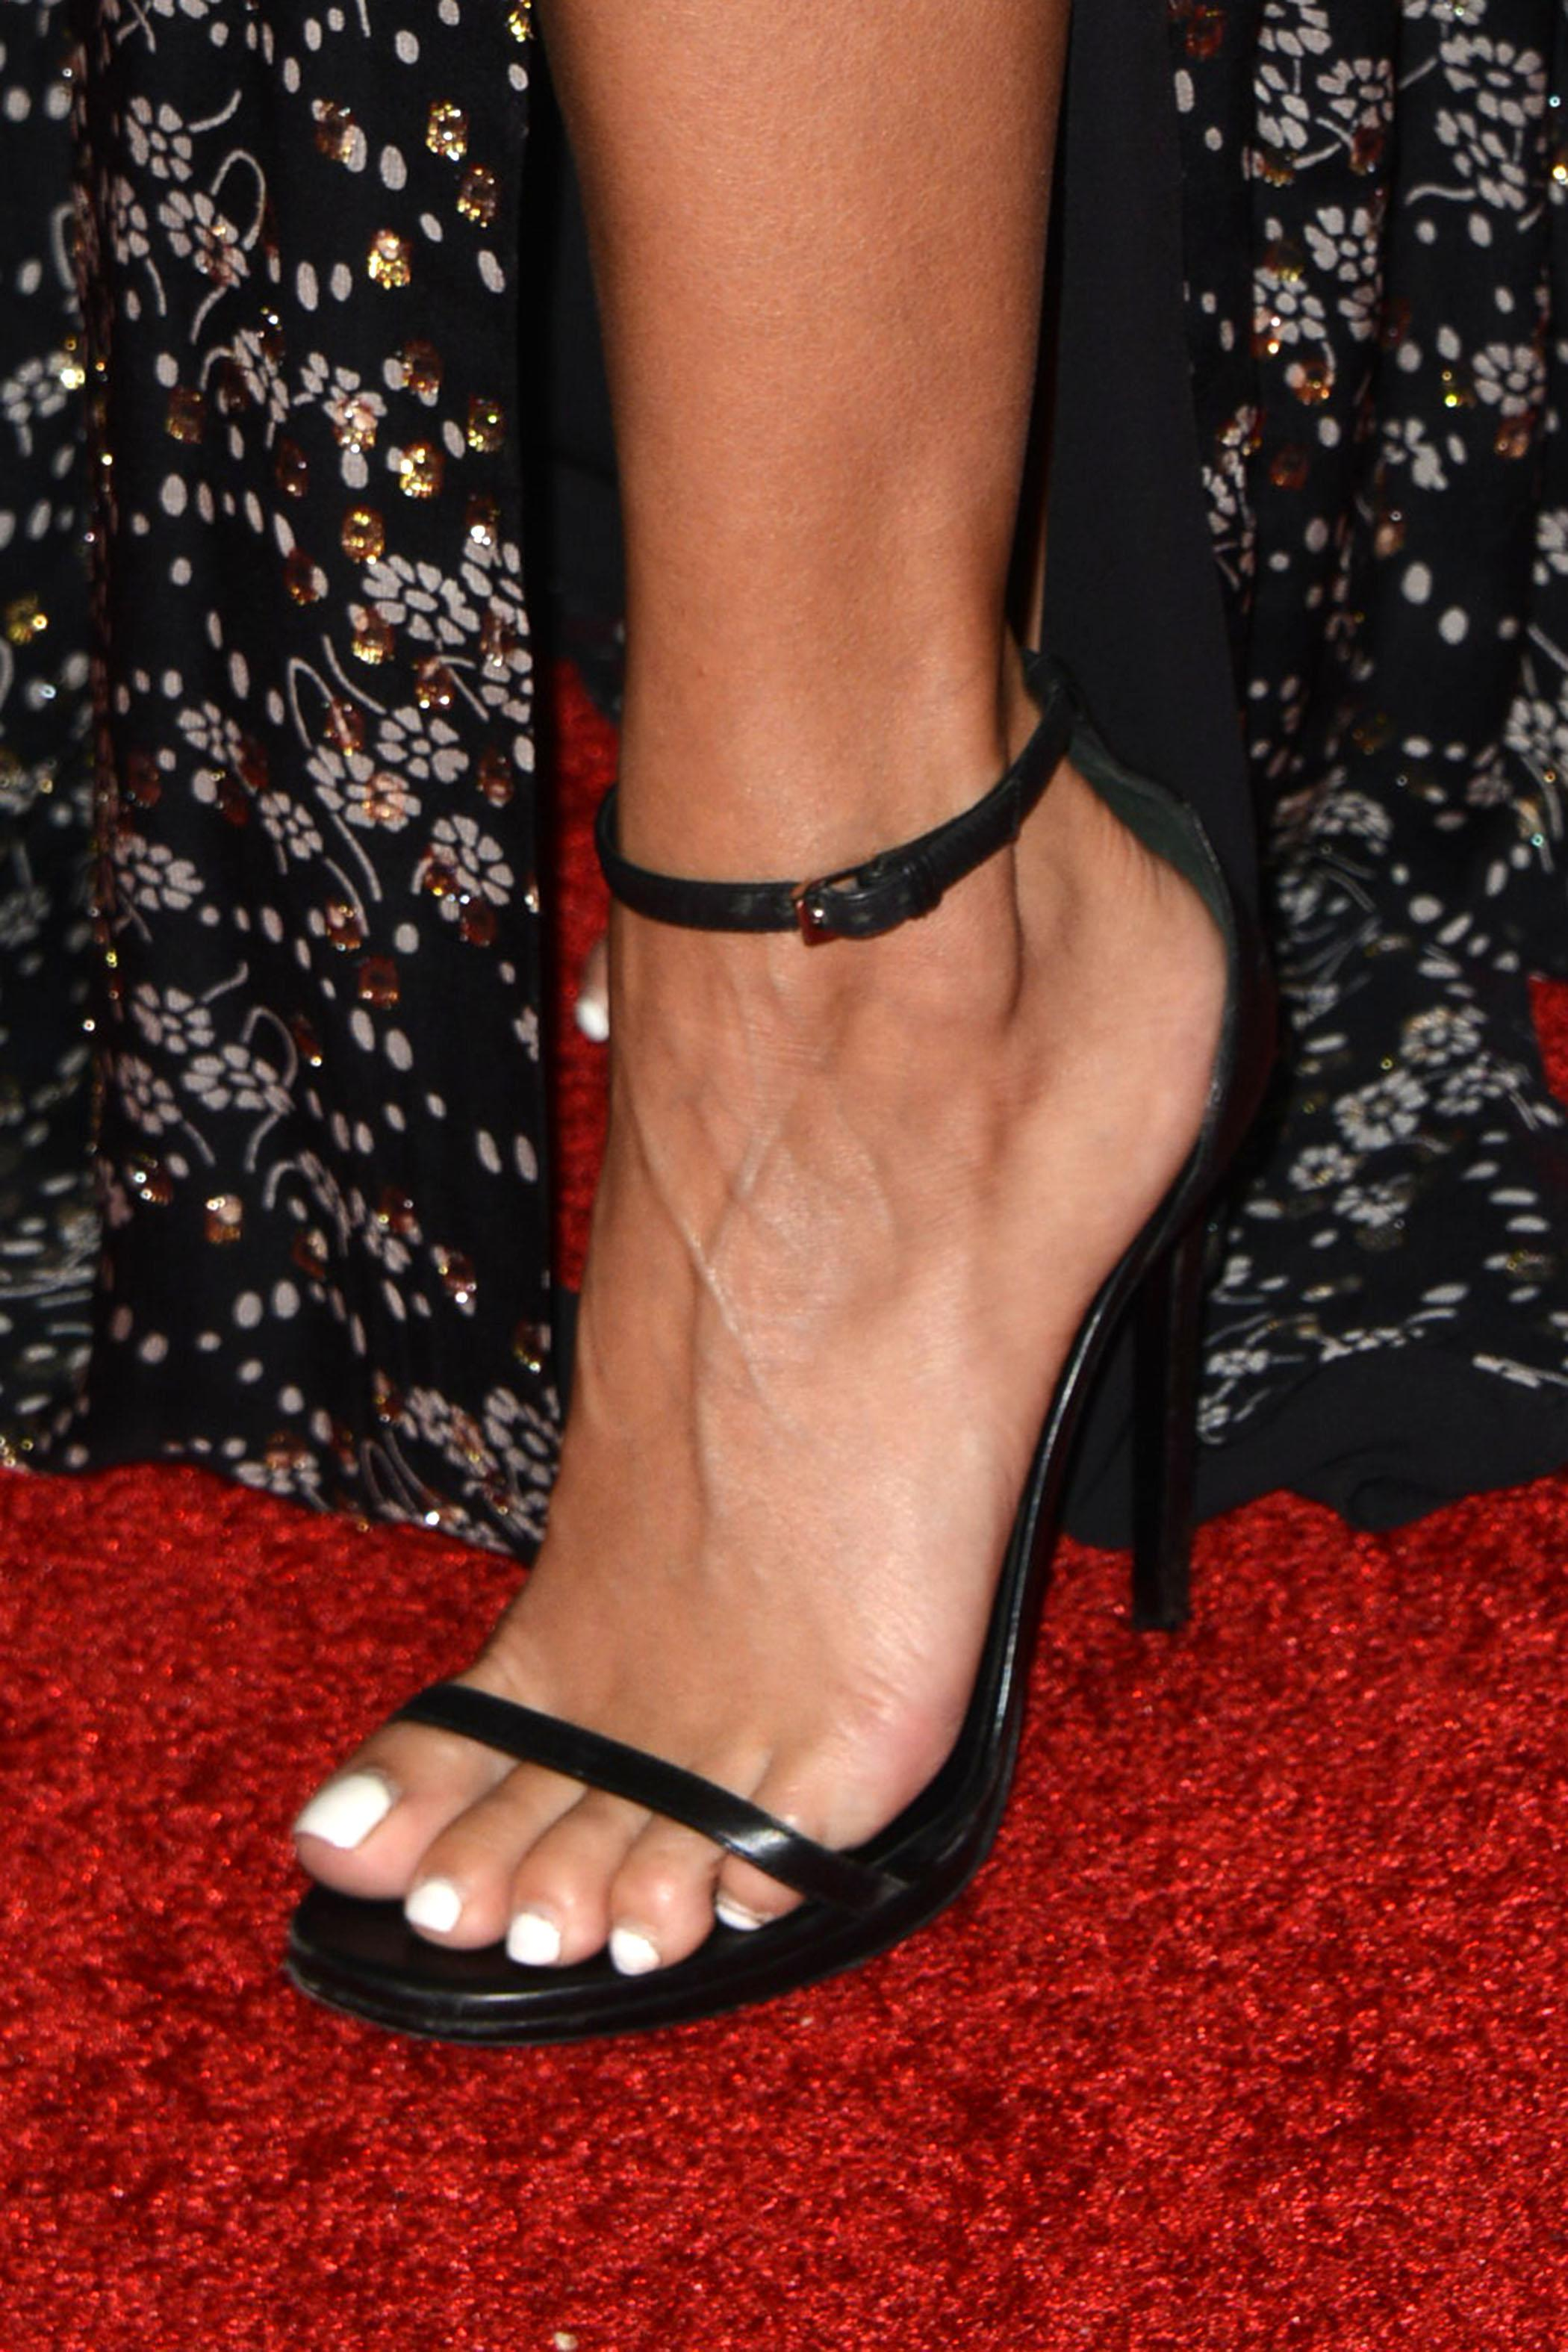 Are absolutely Vanessa hudgens toes opinion you